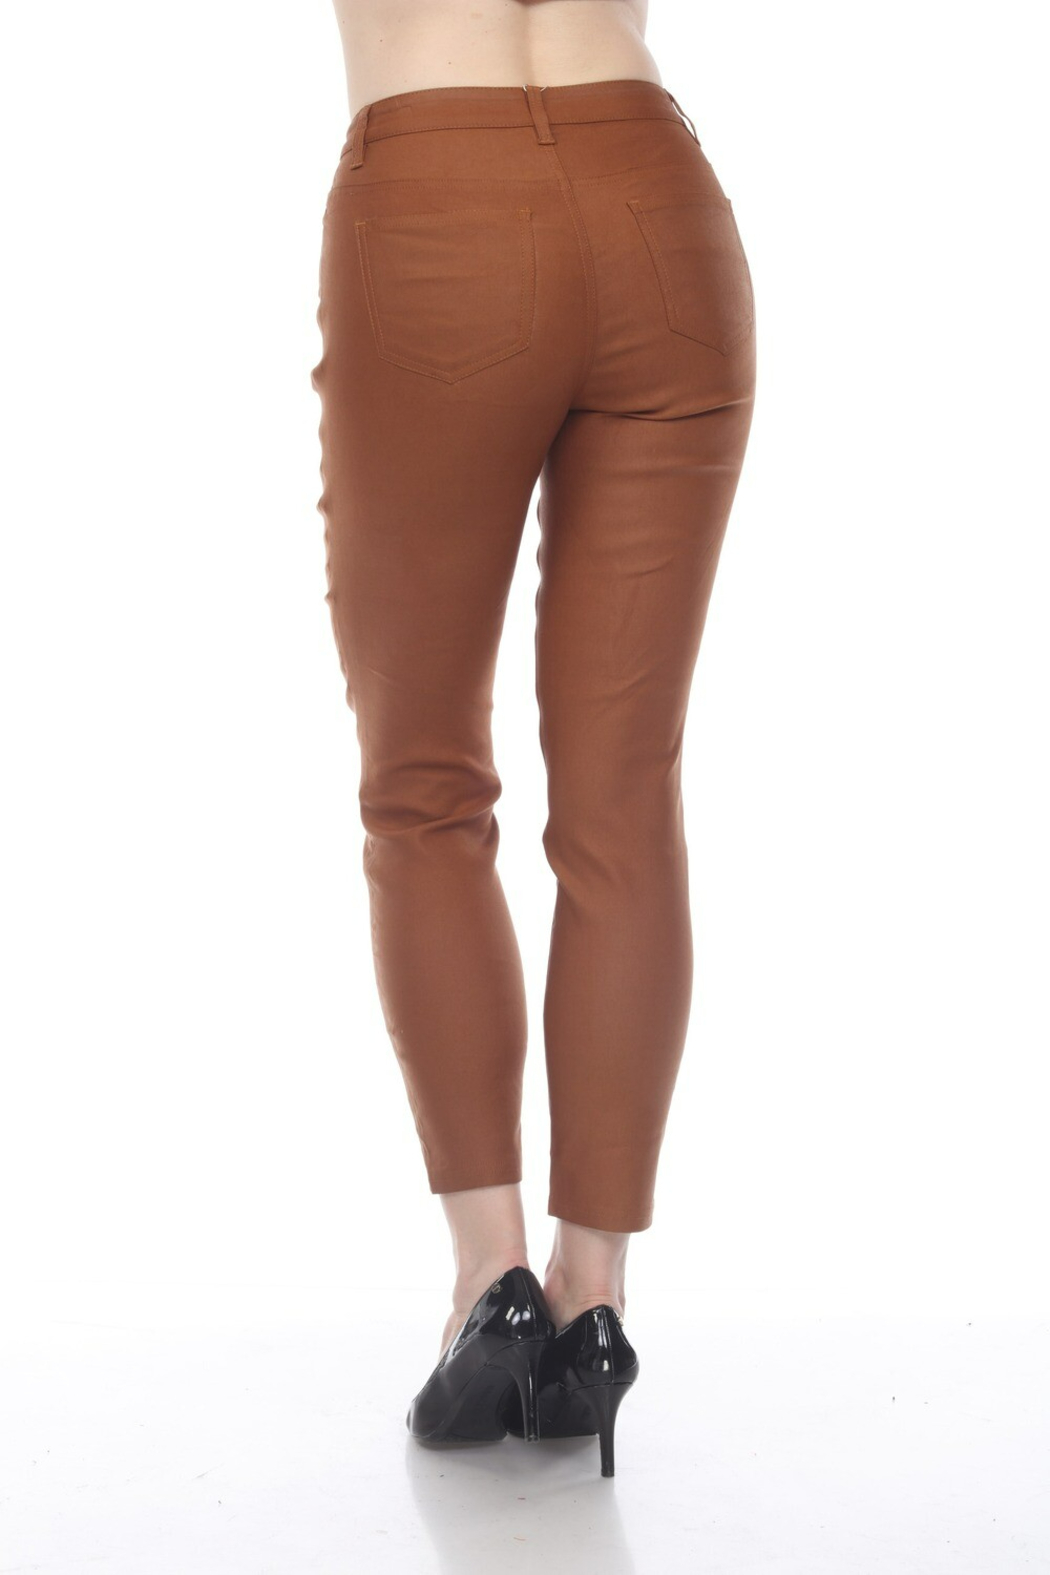 AZI Jeans Faux Leather Jeans - Front Full Image